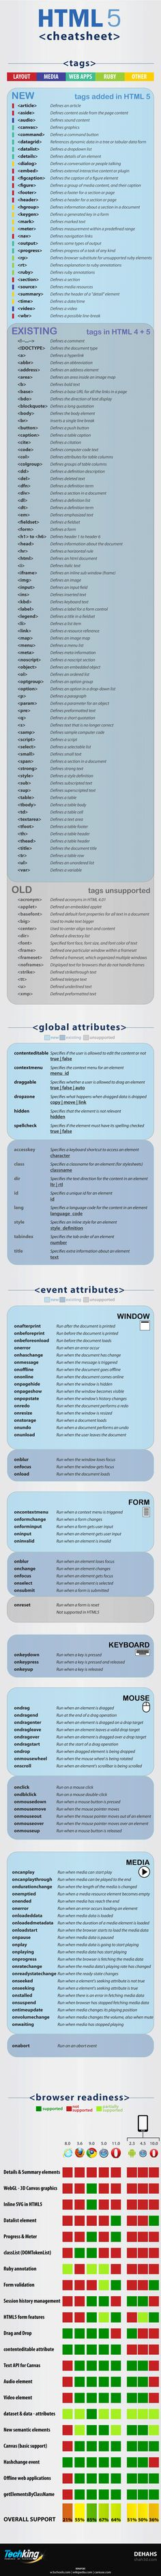 HTML 5 CHEAT SHEET #Infographic #SEO #Blogging #Marketing